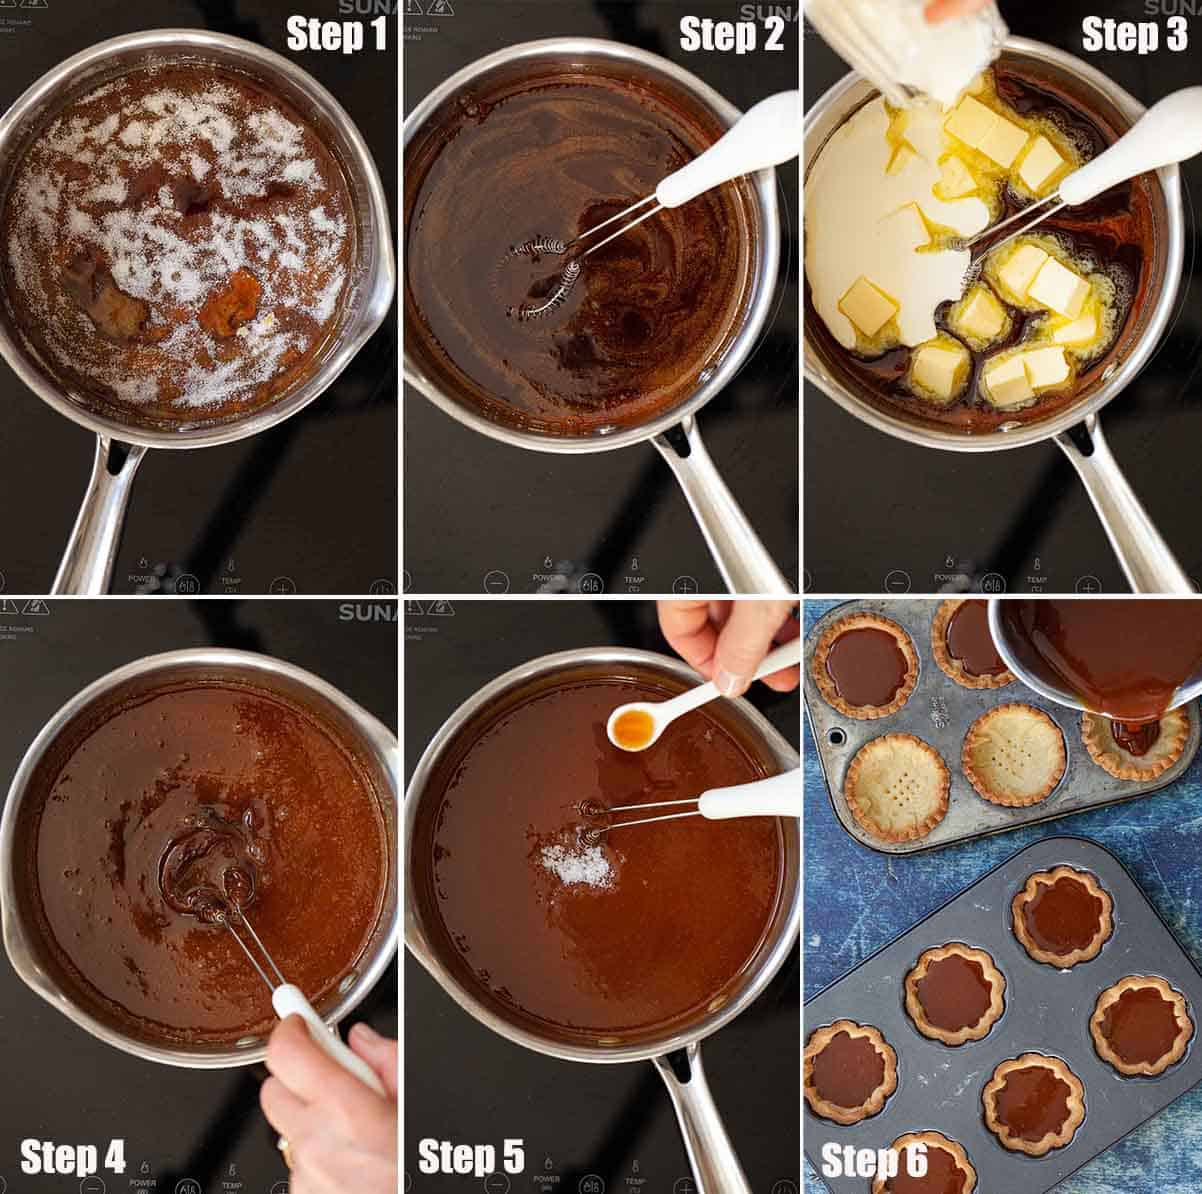 Collage of images showing caramel being made and used to fill pastry cases.